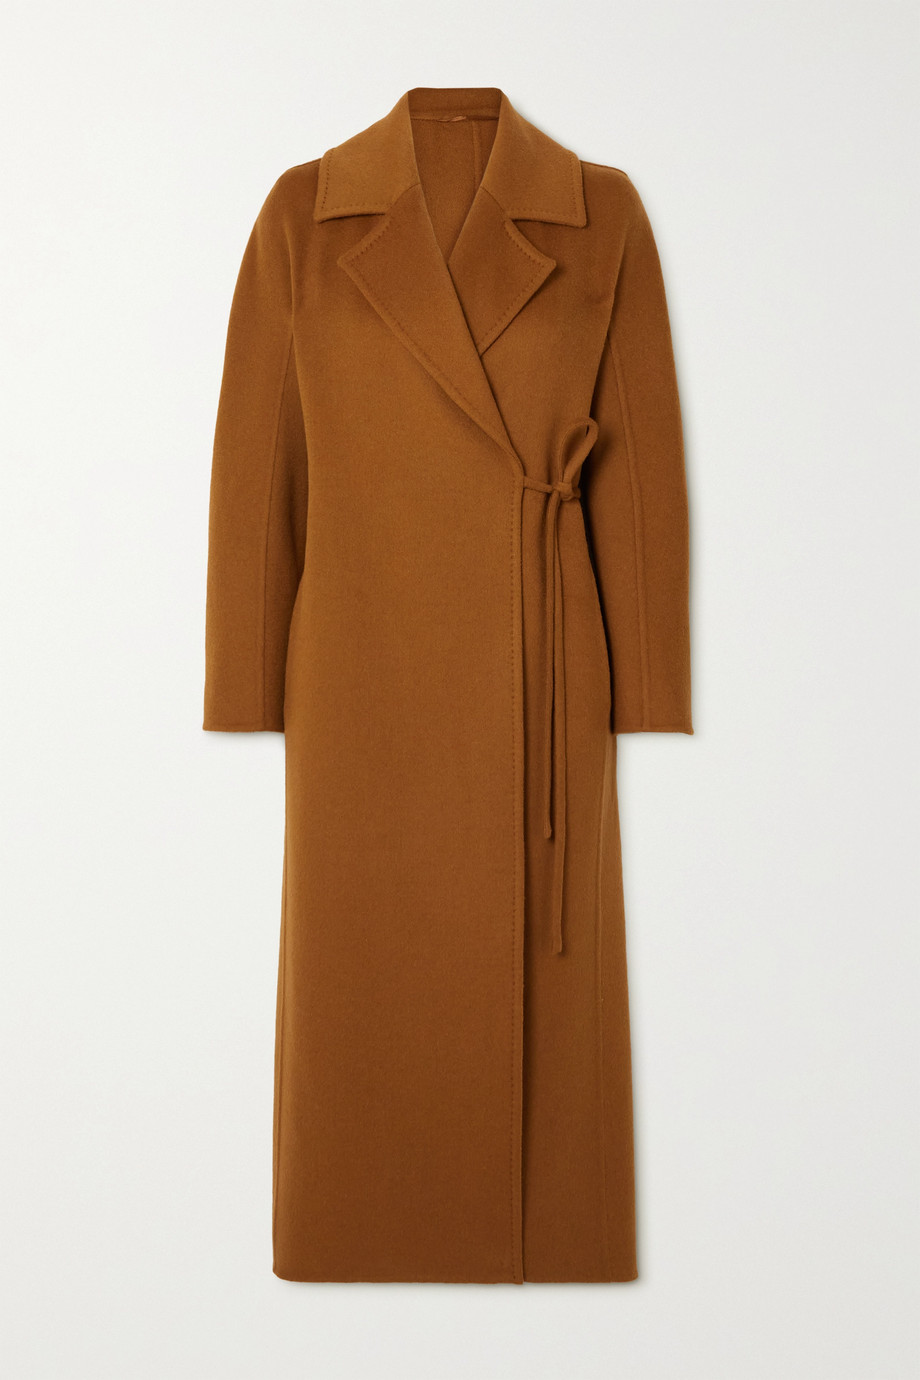 Max Mara Camel hair wrap coat